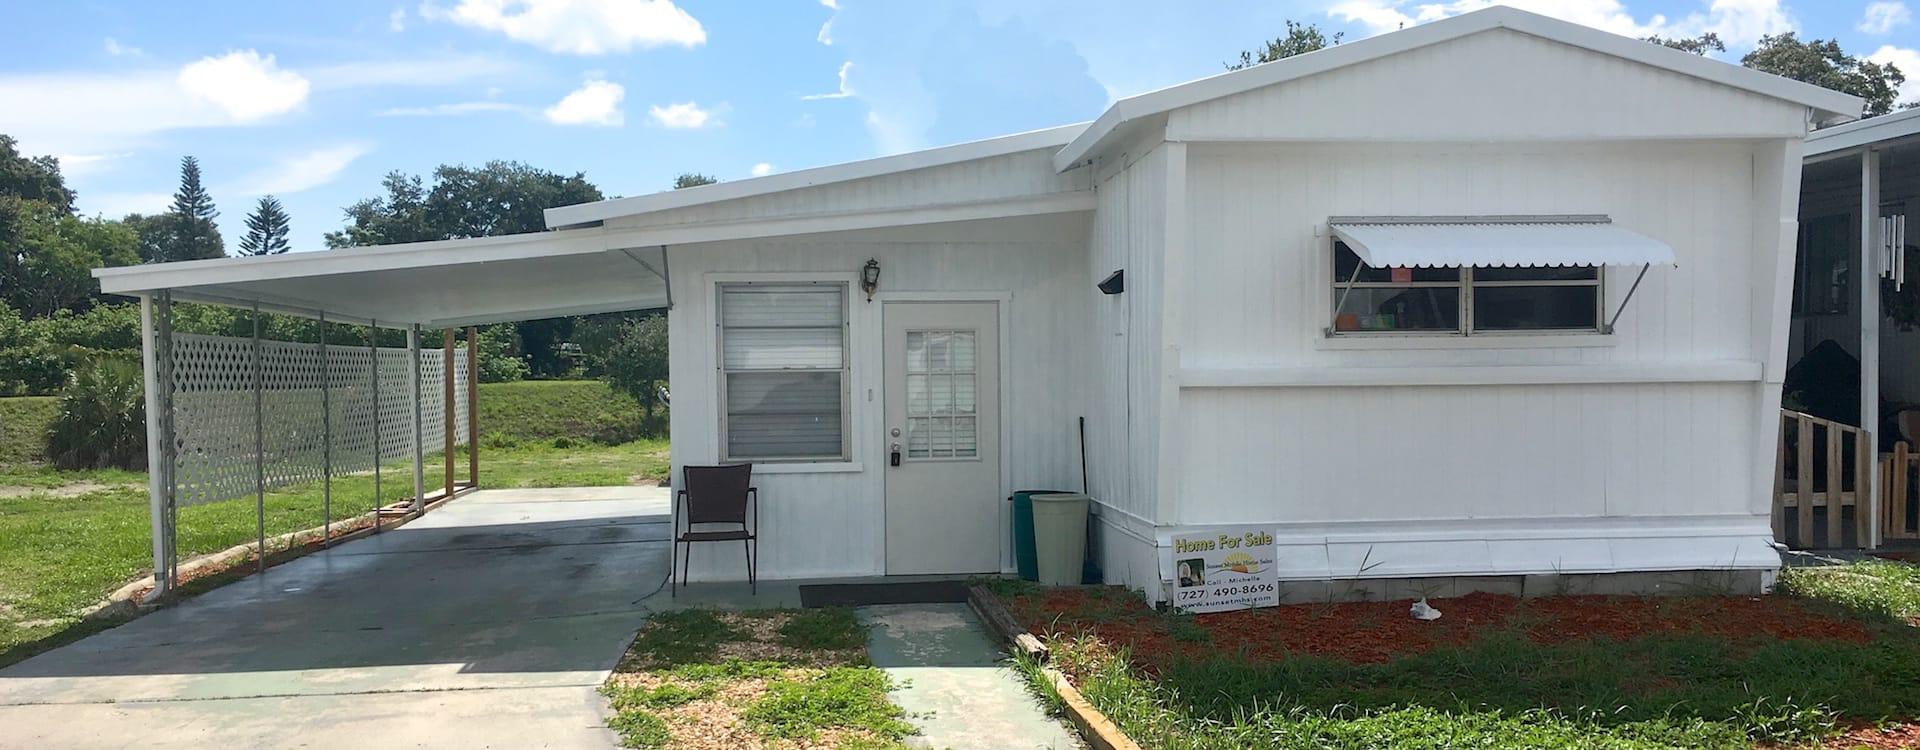 Mobile Home For Sale Saint Petersburg Fl Palm Circle